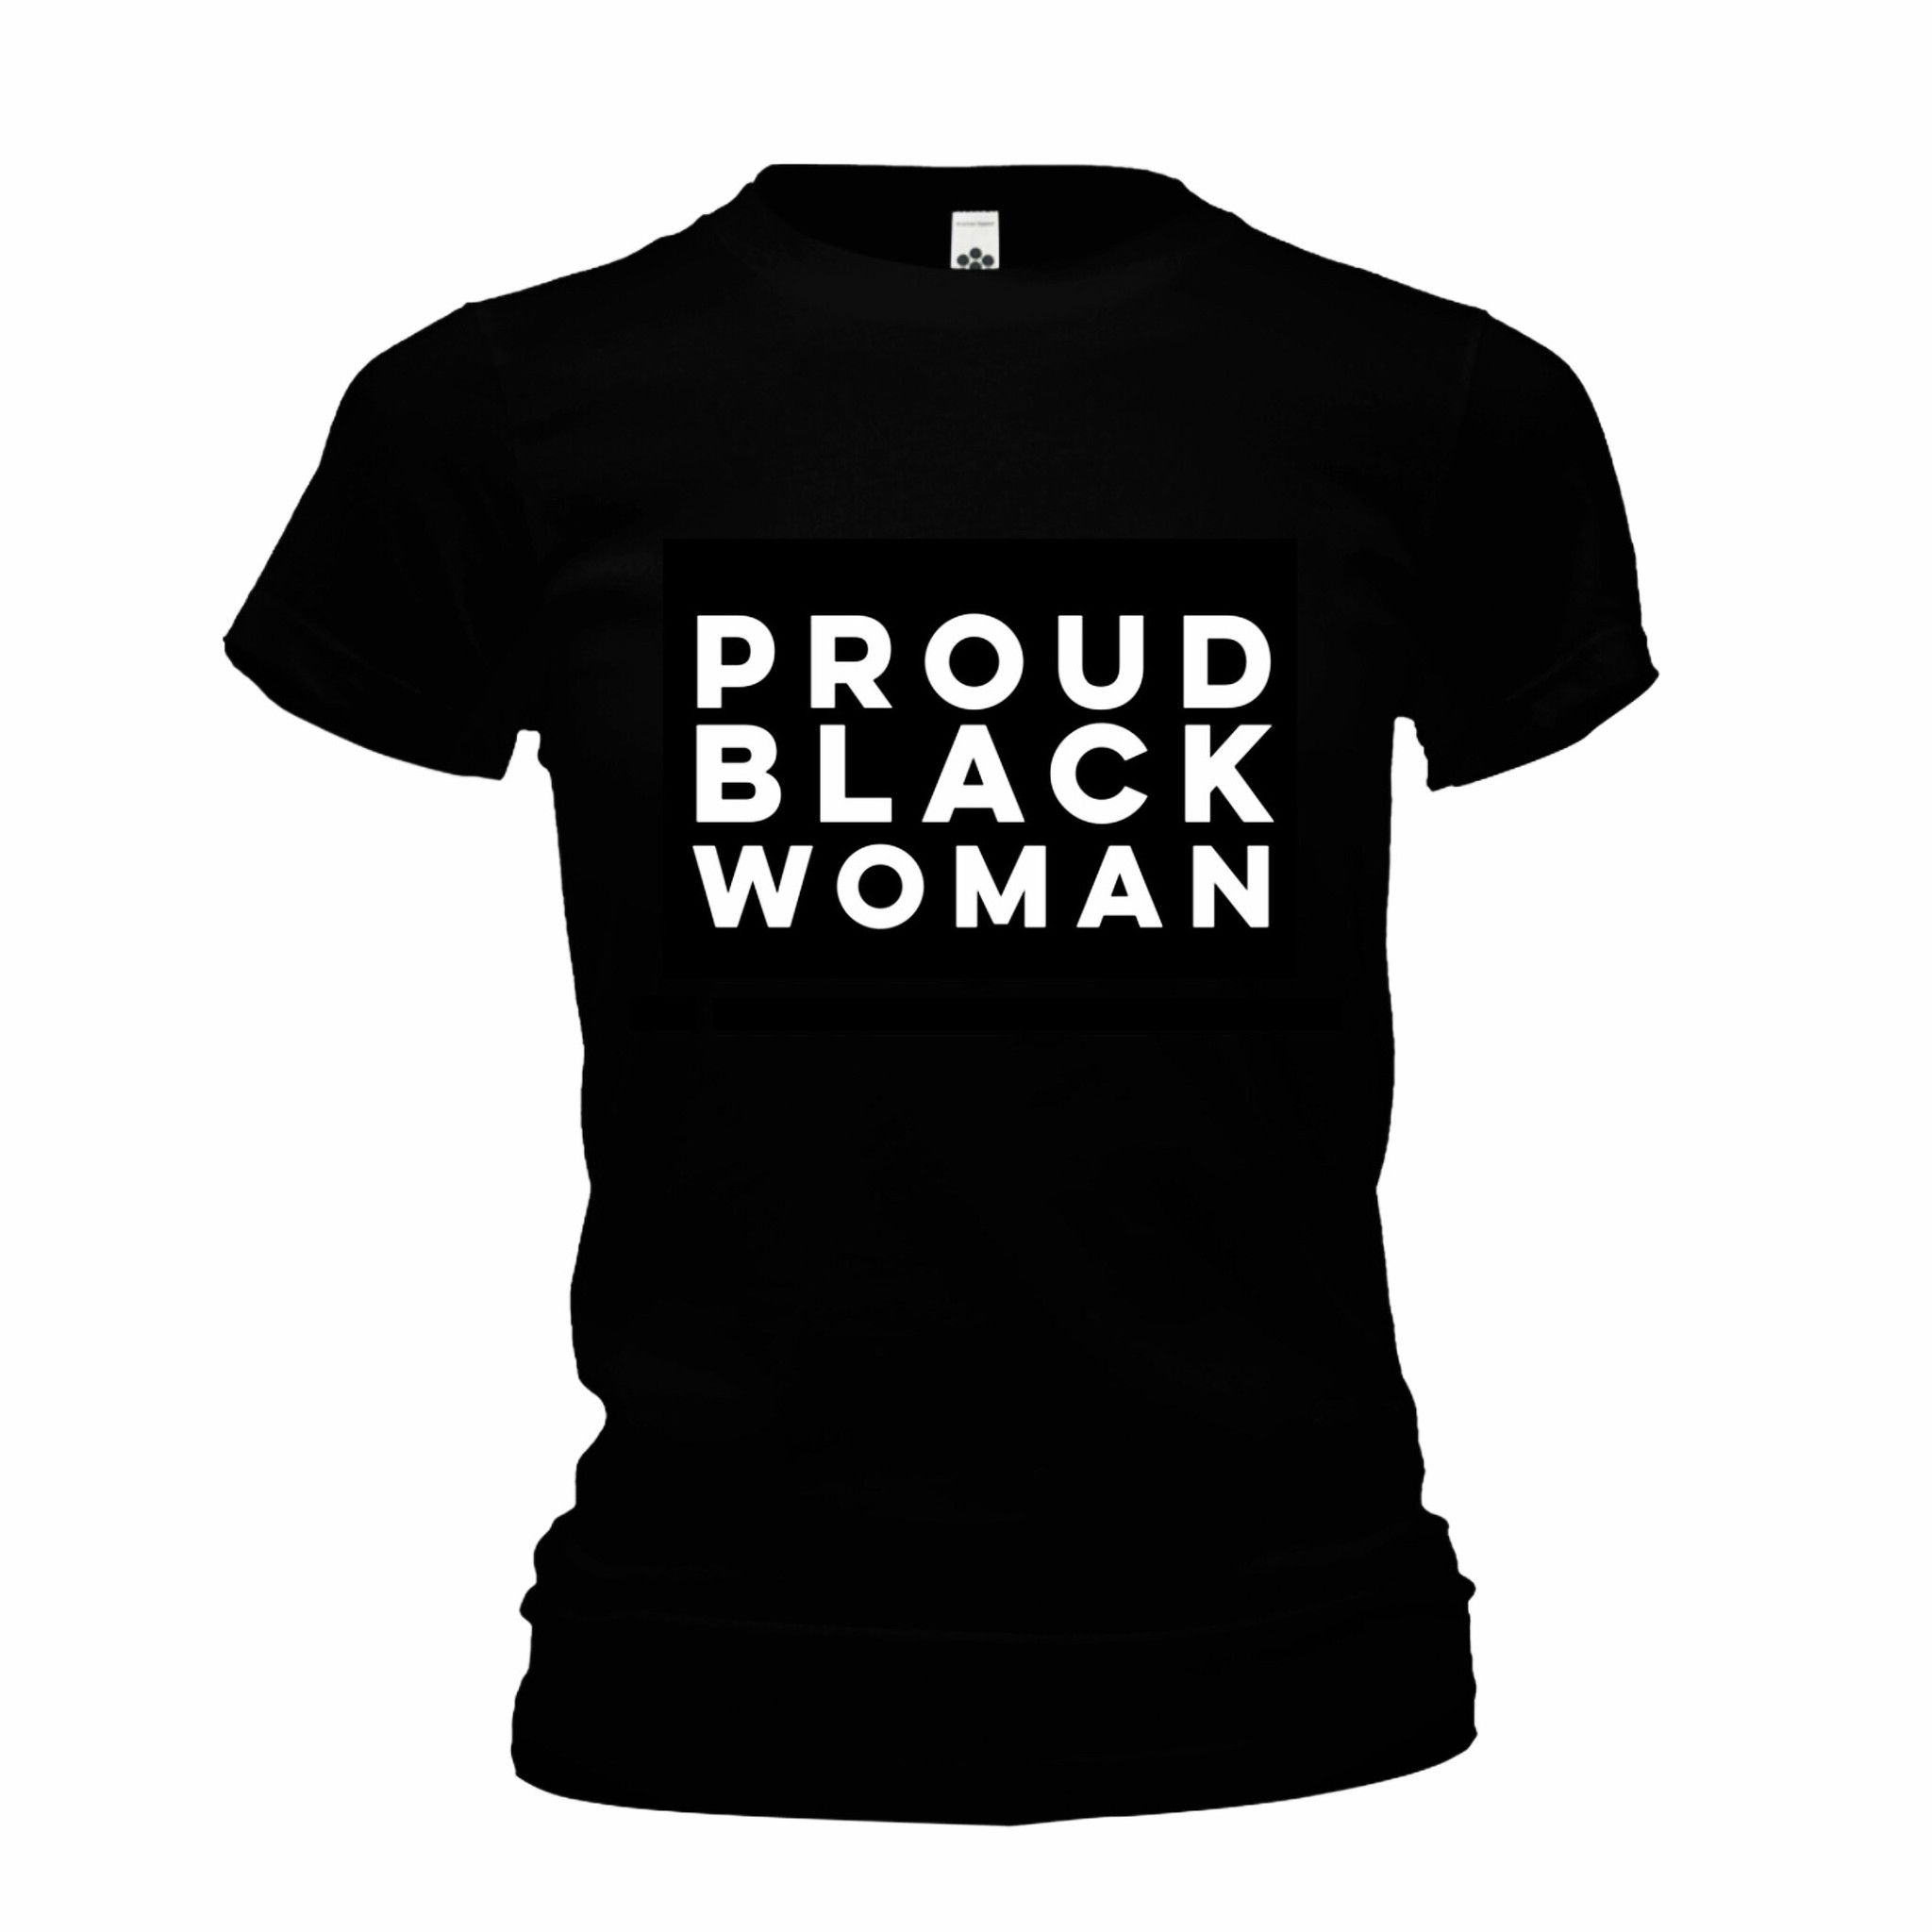 Proud BLACK woman fitted black shirt   The Cover counts too ...